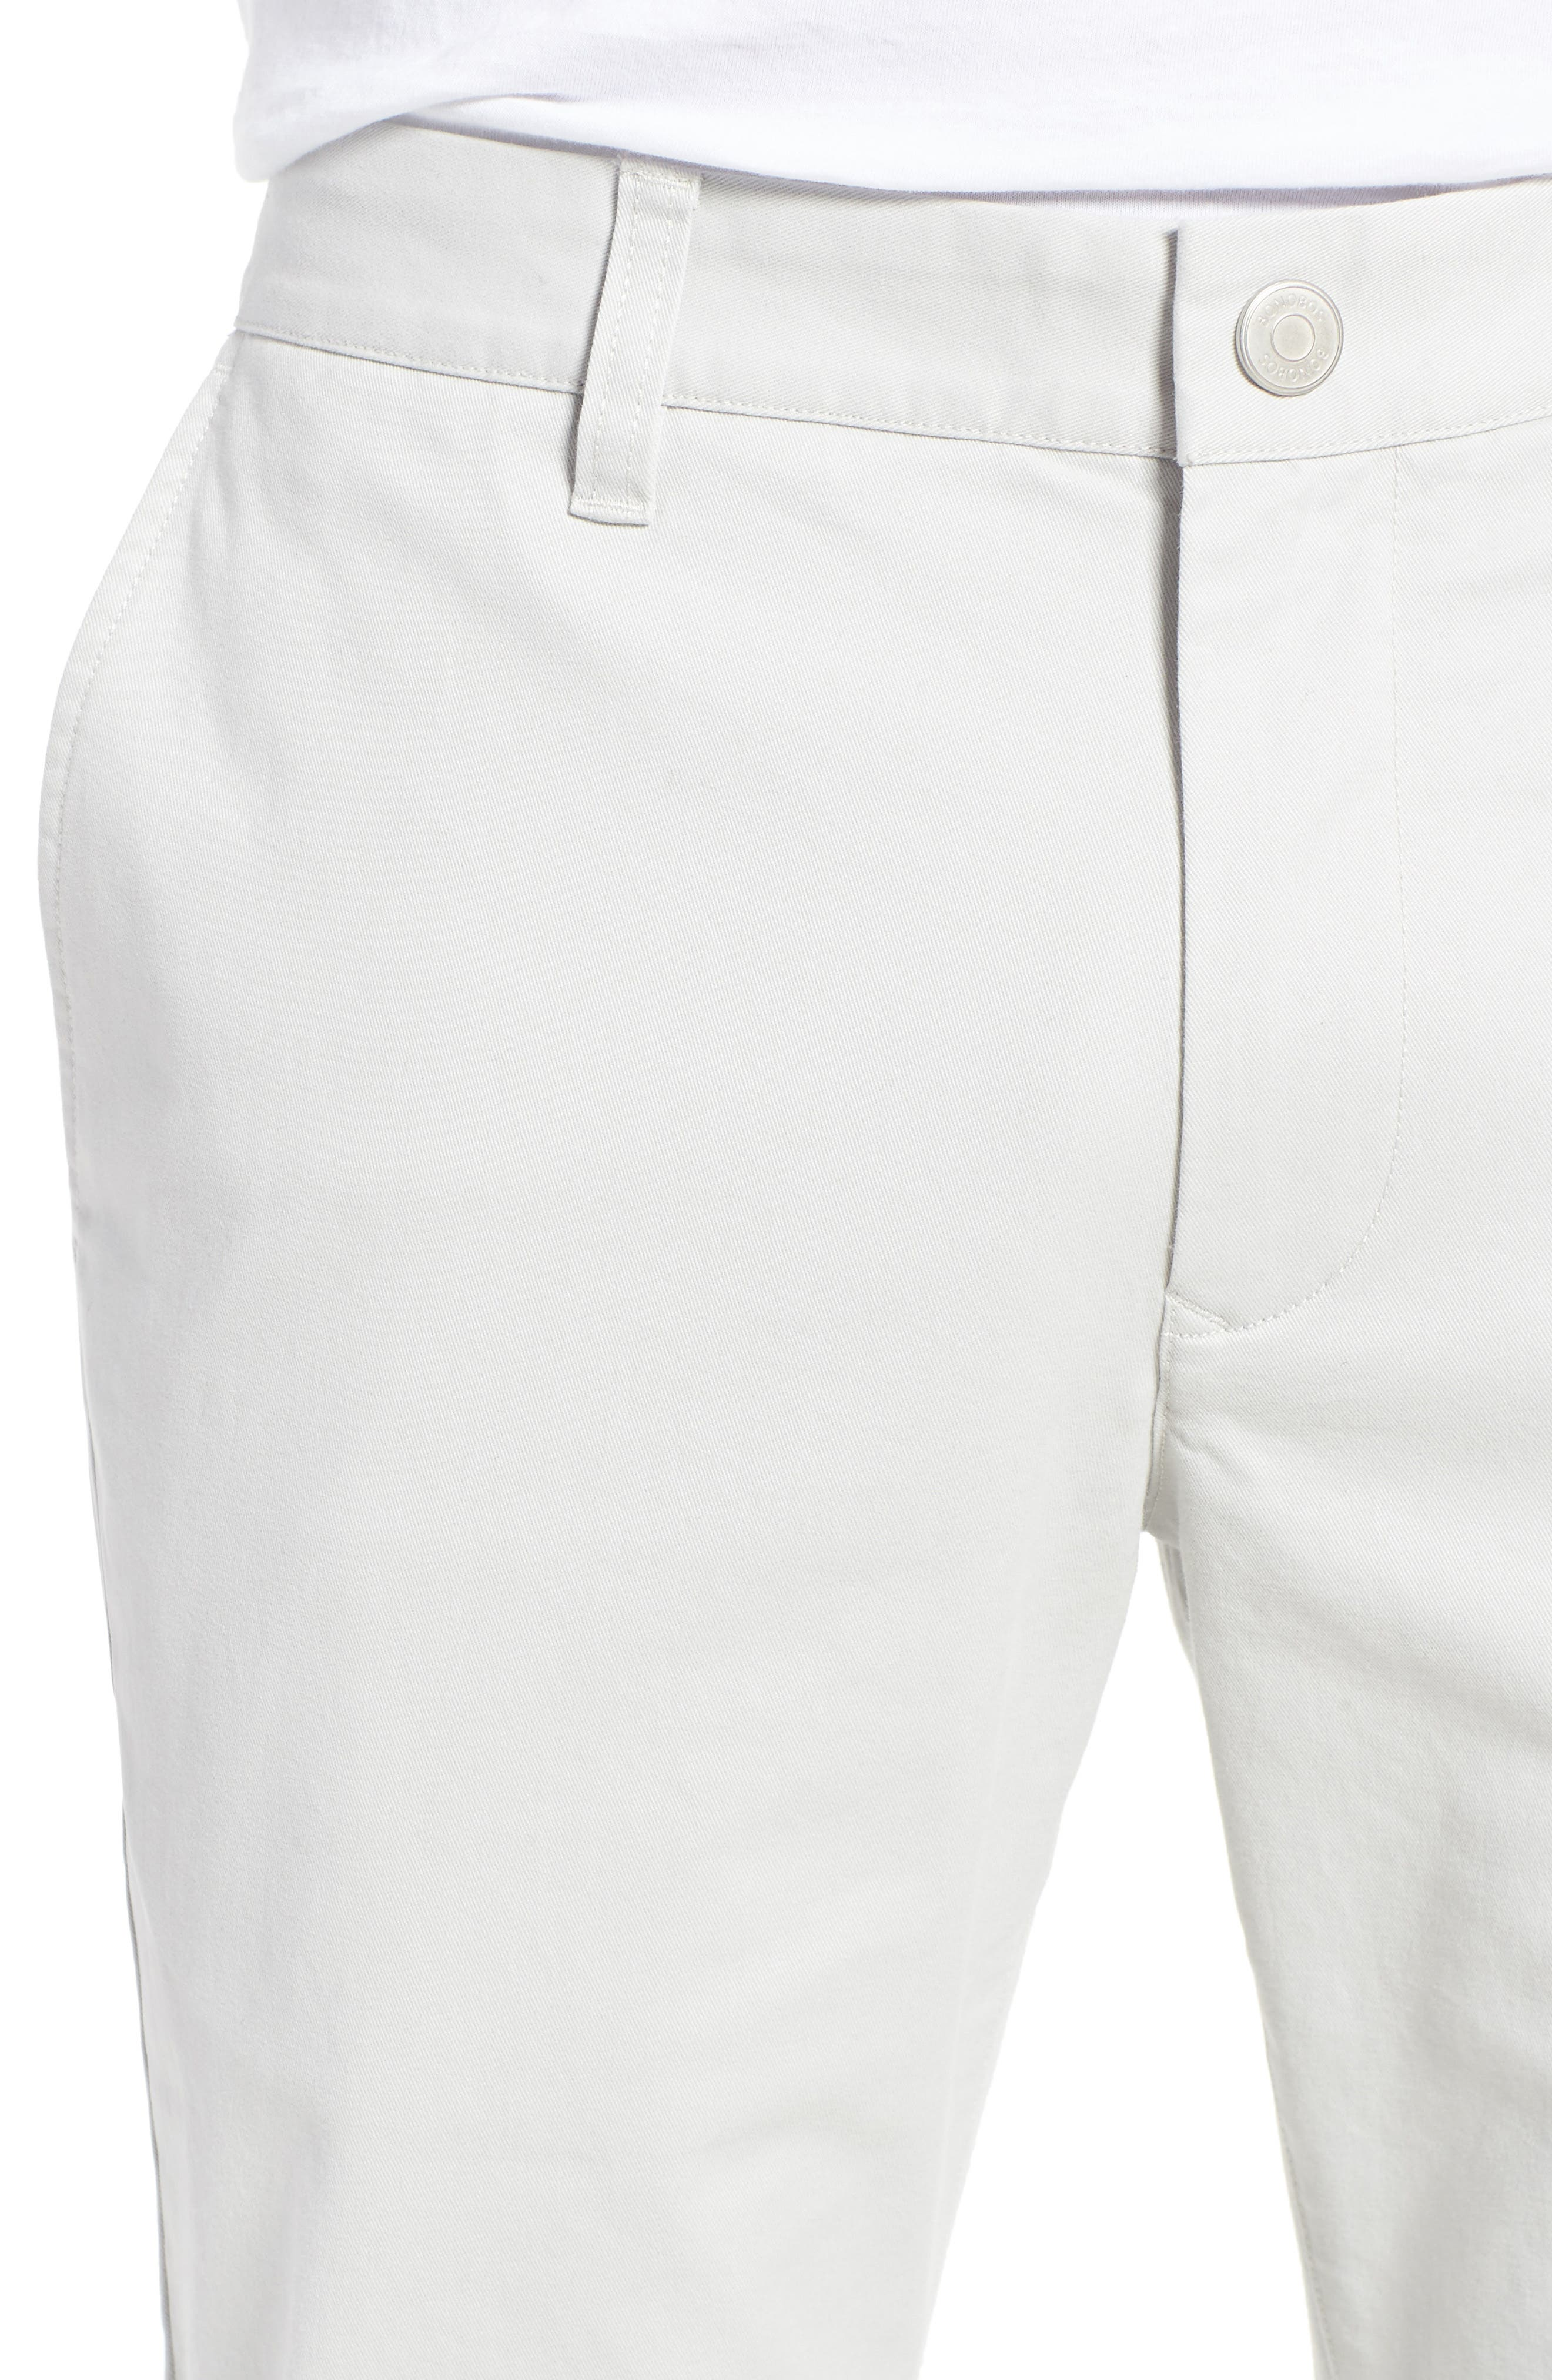 Tailored Fit Washed Stretch Cotton Chinos,                             Alternate thumbnail 131, color,